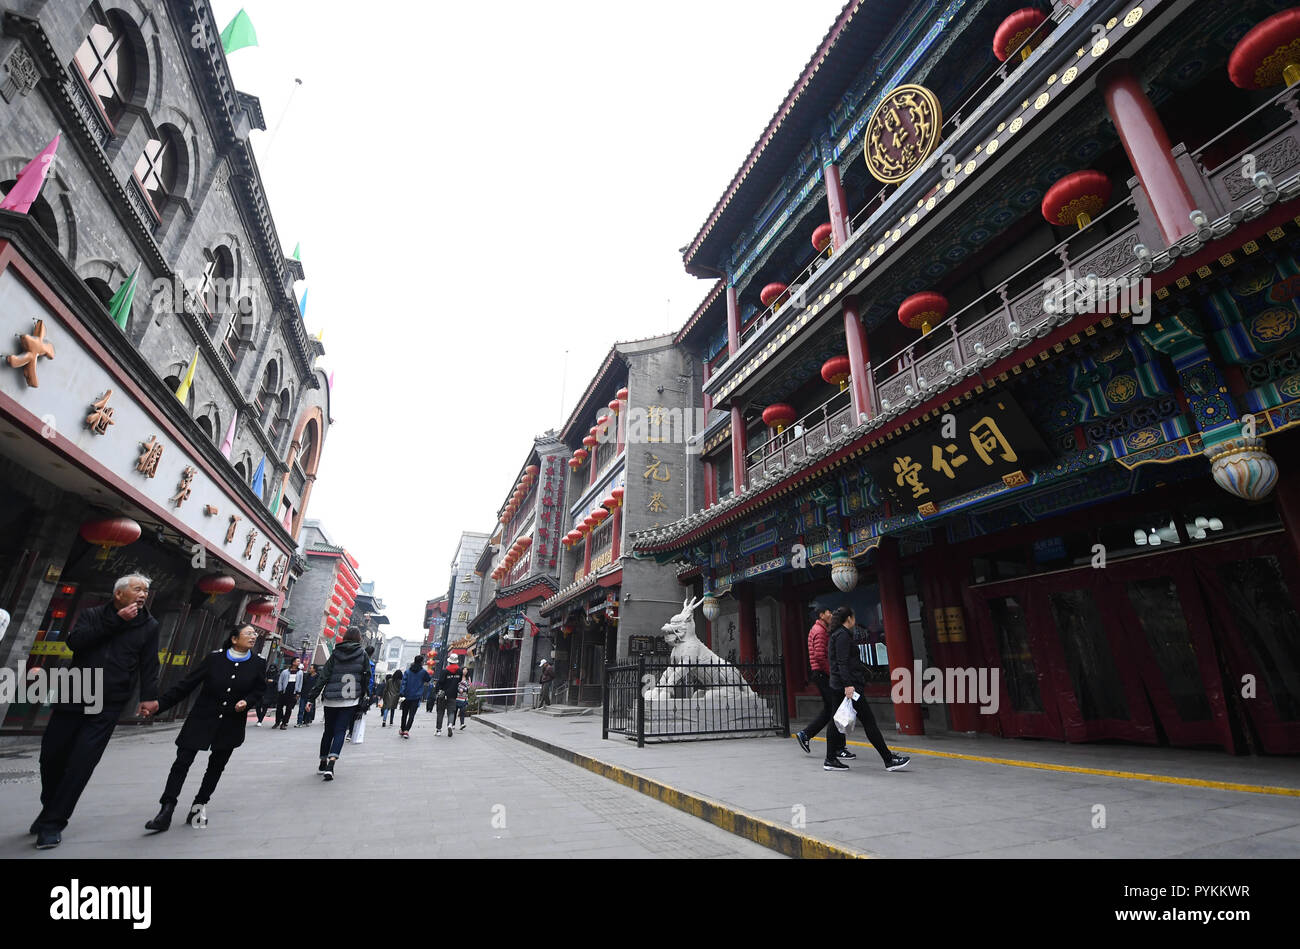 Beijing, China. 25th Oct, 2018. Tourists visit a store of Tongrentang, a pharmaceutical company with a history of more than 300 years, in Beijing, capital of China, Oct. 25, 2018. Established in 1669, Tongrentang is now a leading traditional Chinese medicine producer and retailer in China, and has earned a worldwide reputation. It has registered its brand in more than 100 countries and regions. Credit: Zhang Chenlin/Xinhua/Alamy Live News Stock Photo